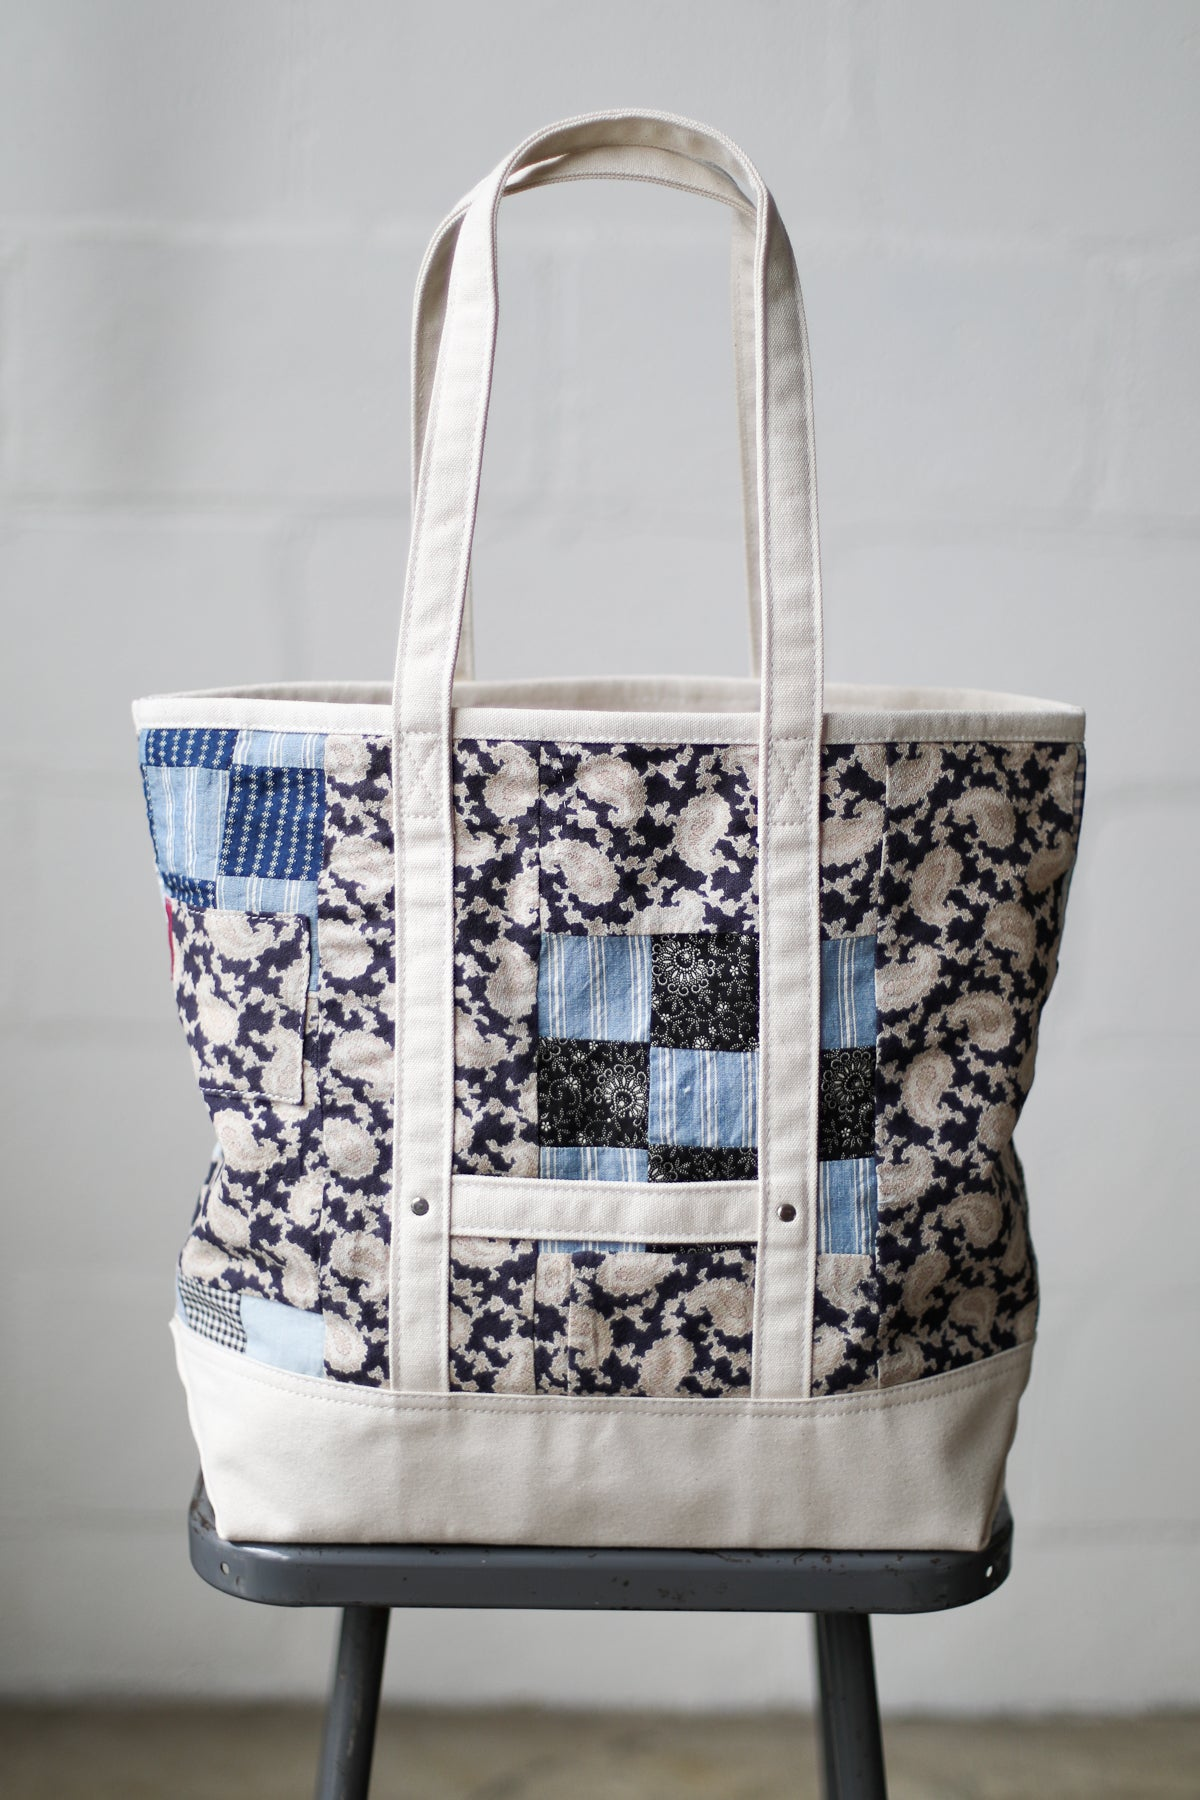 Reclaimed Market Tote No. 076